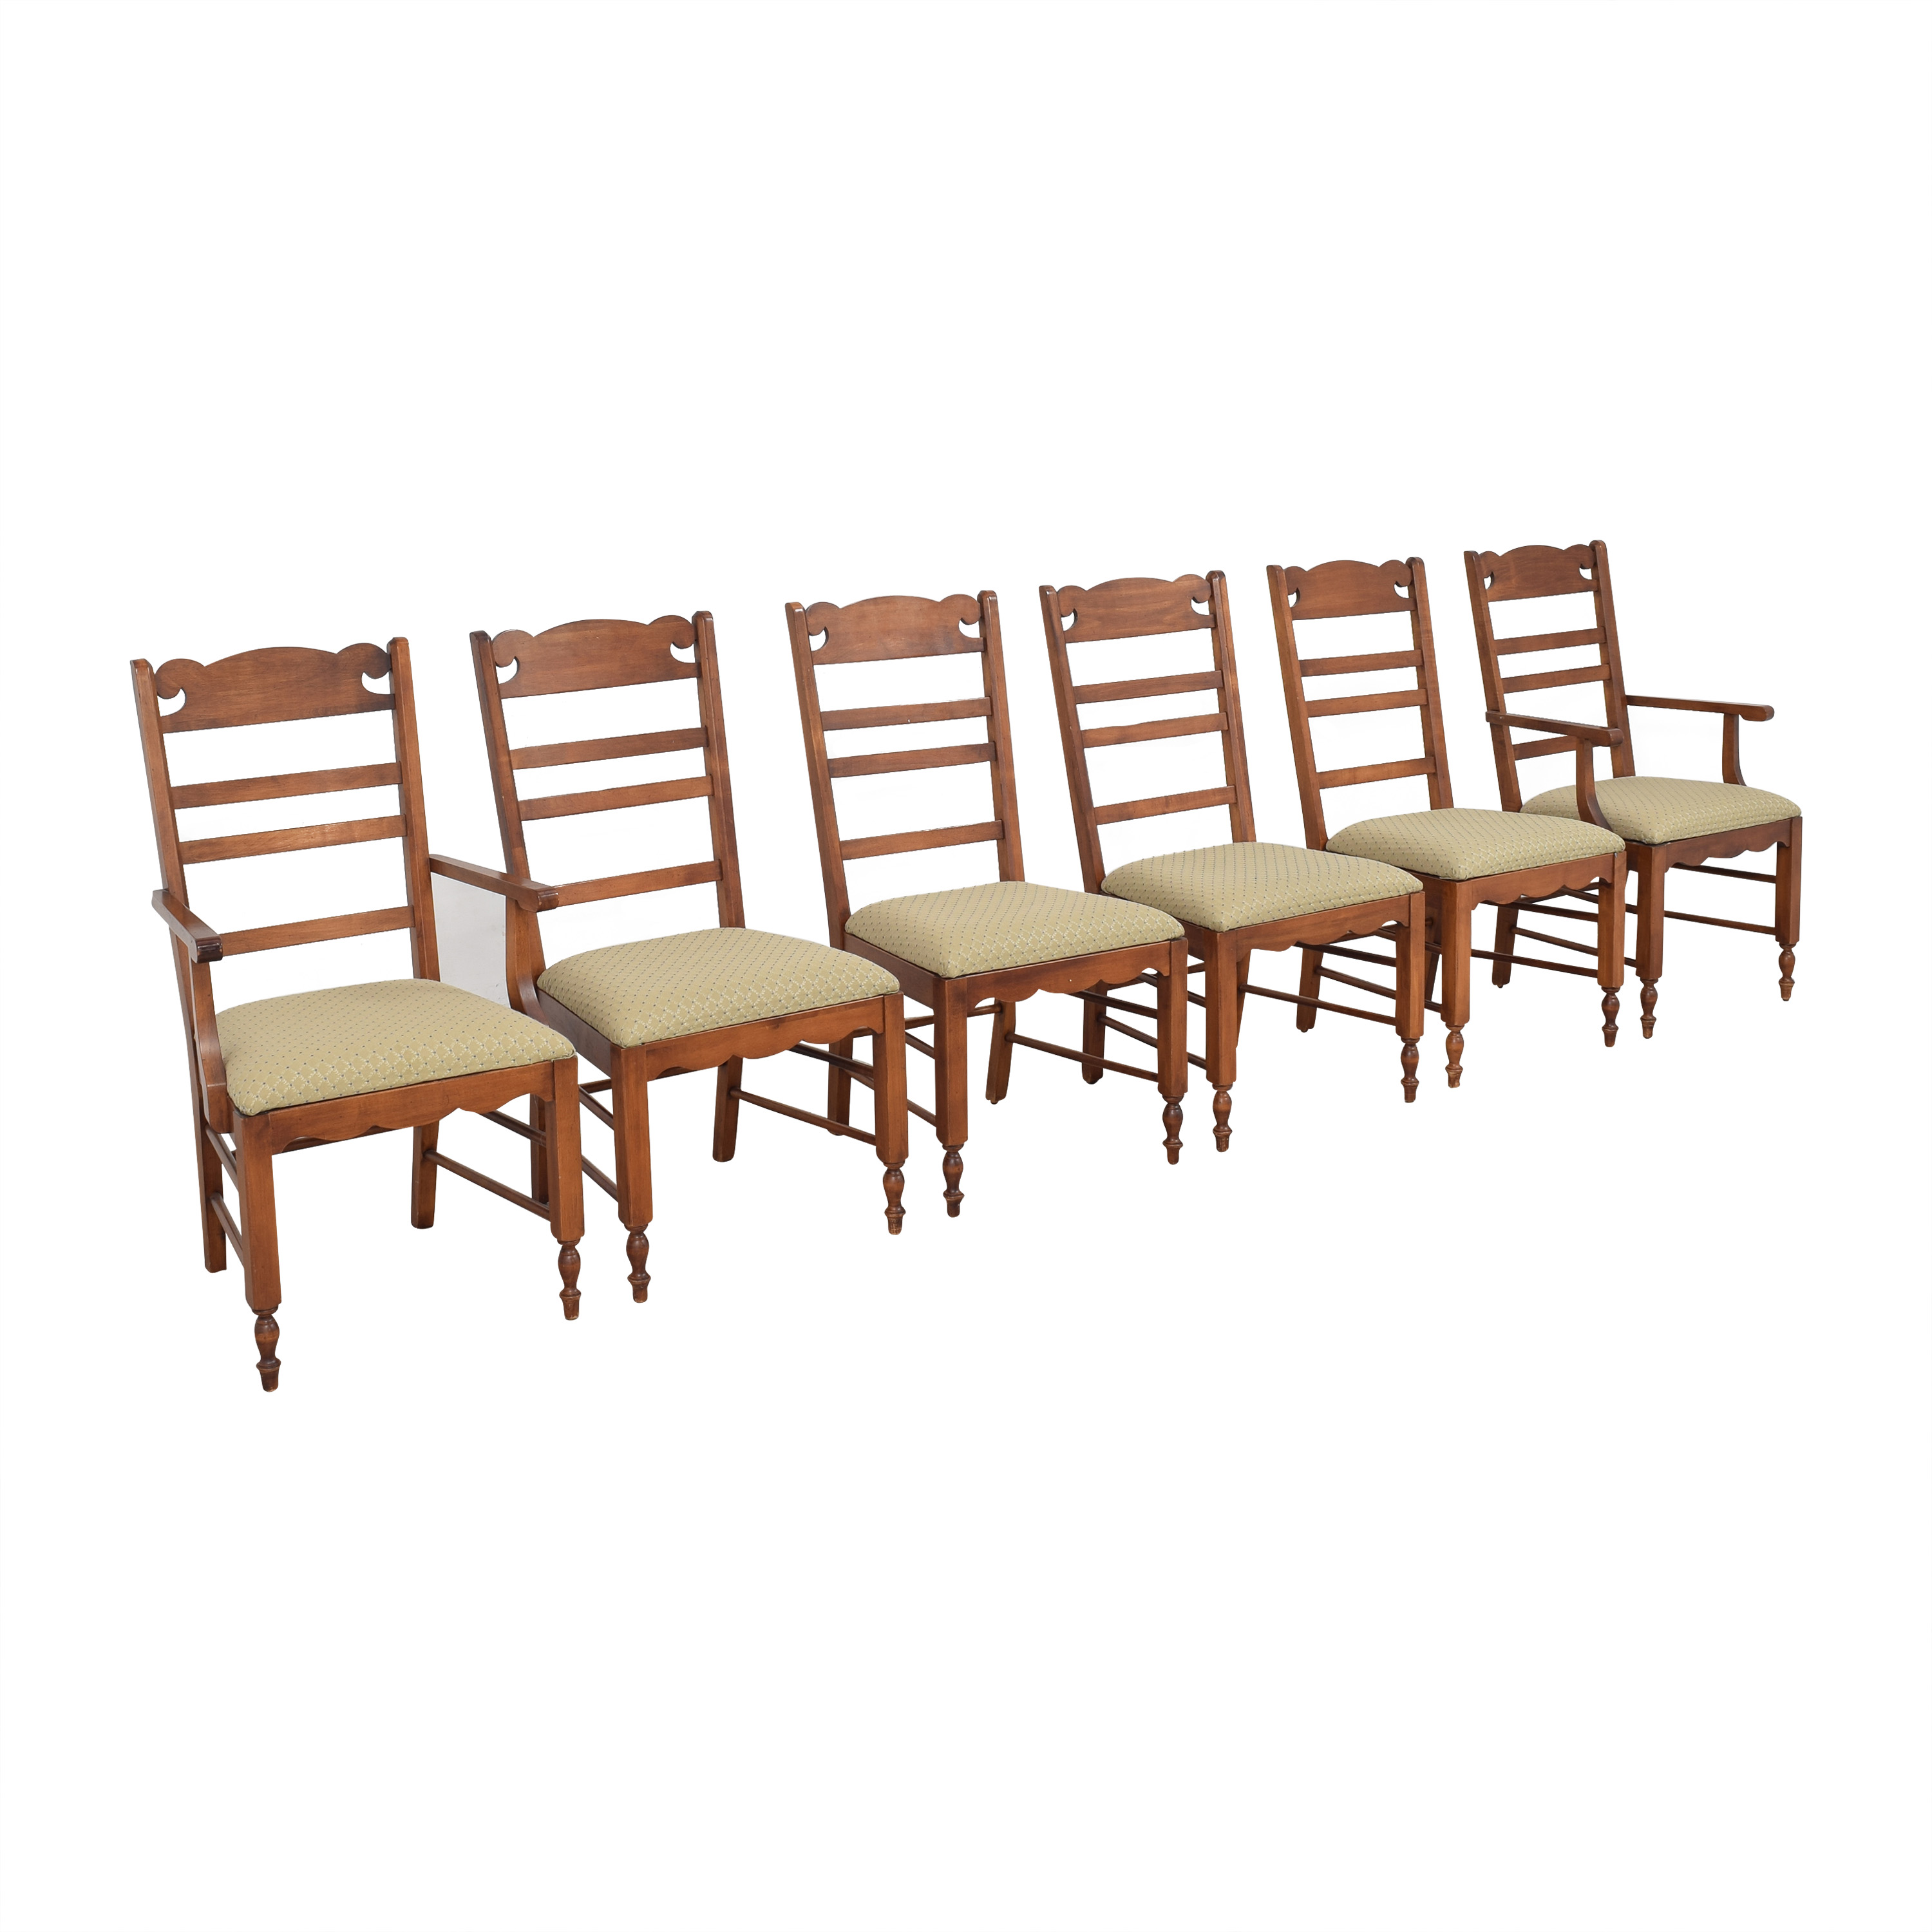 Pennsylvania House Pennsylvania House Ladder Back Dining Chairs pa